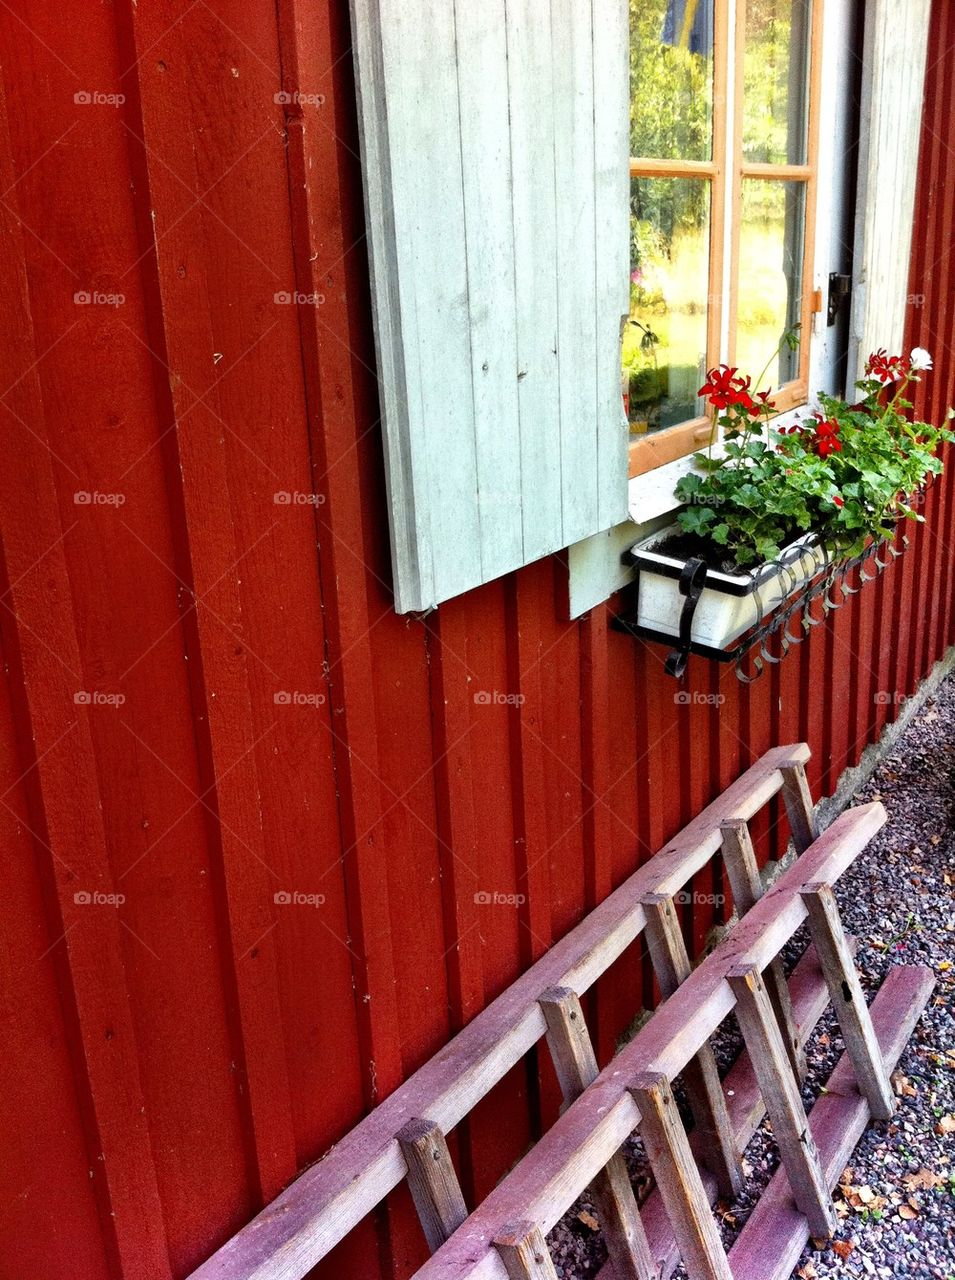 Red wooden house with shutters and flower box.